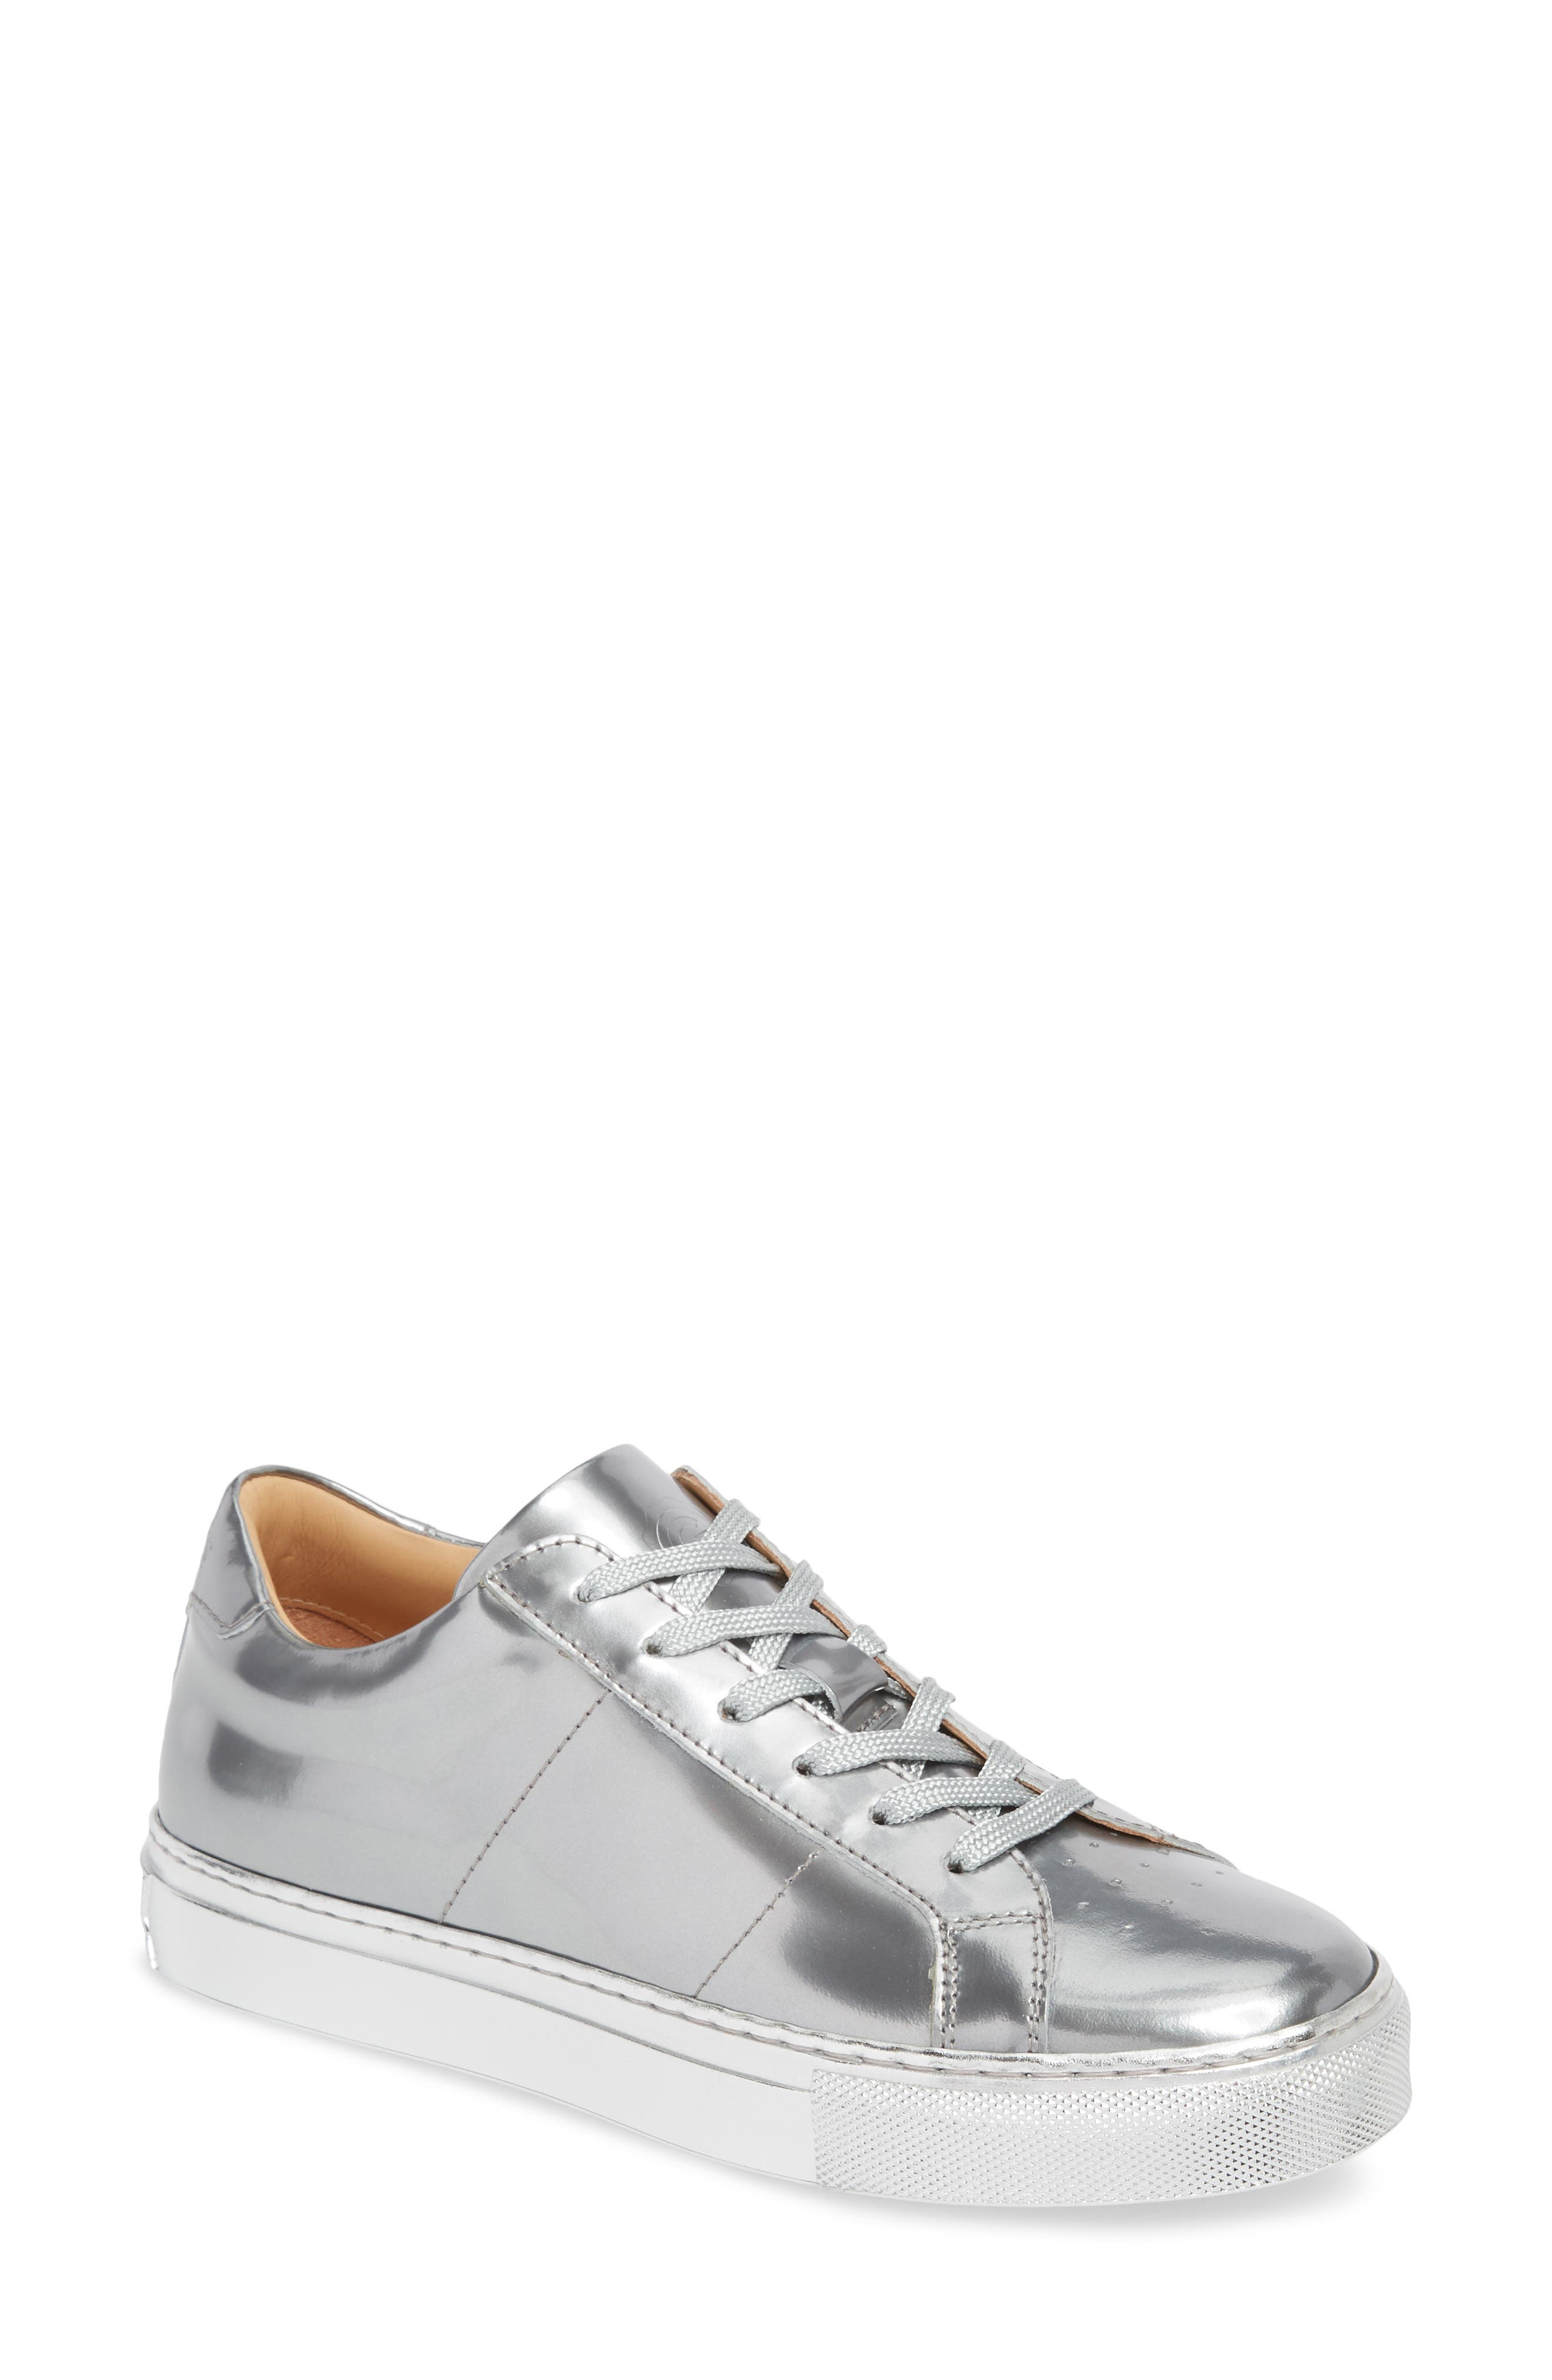 Royale Low Top Sneaker,                         Main,                         color, SILVER TONAL/ FLAT LEATHER